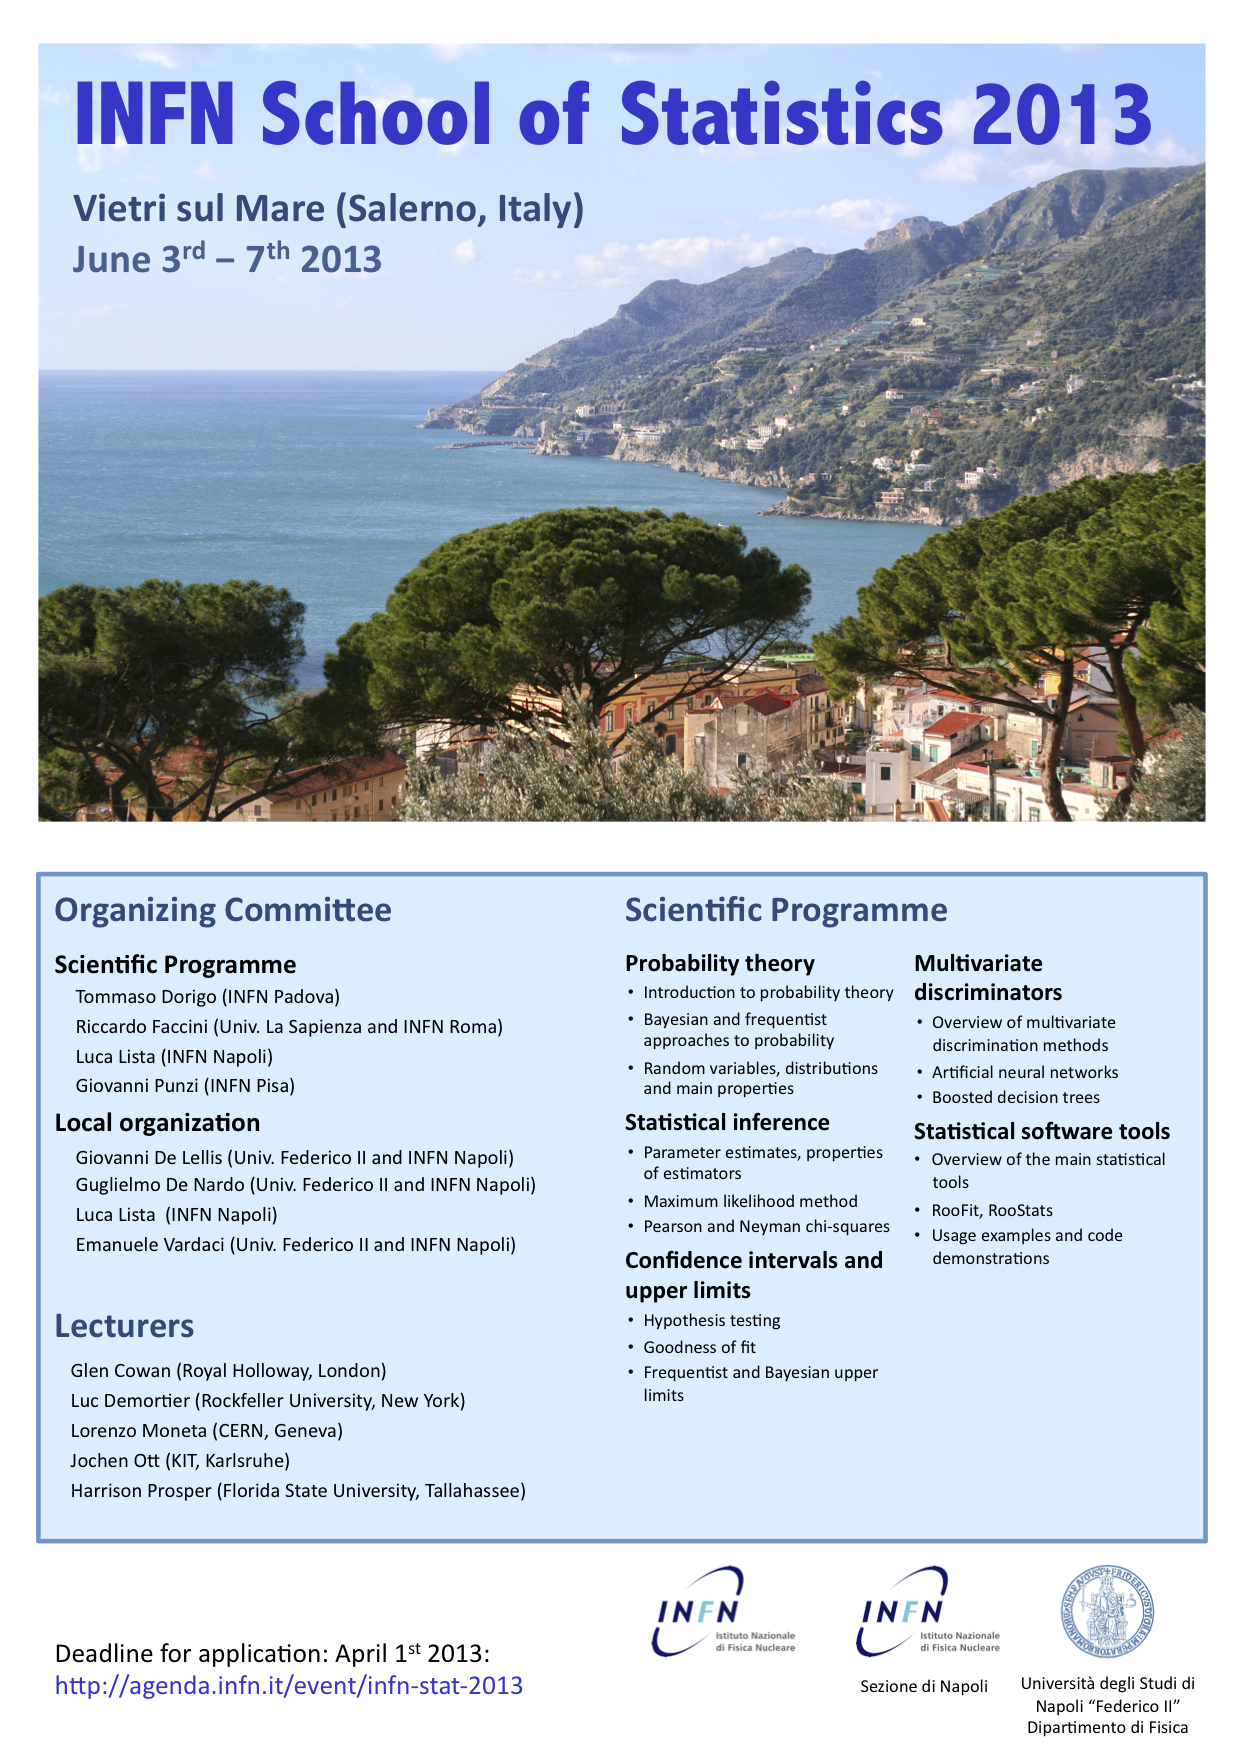 INFN School of Statistics 2013 - Poster